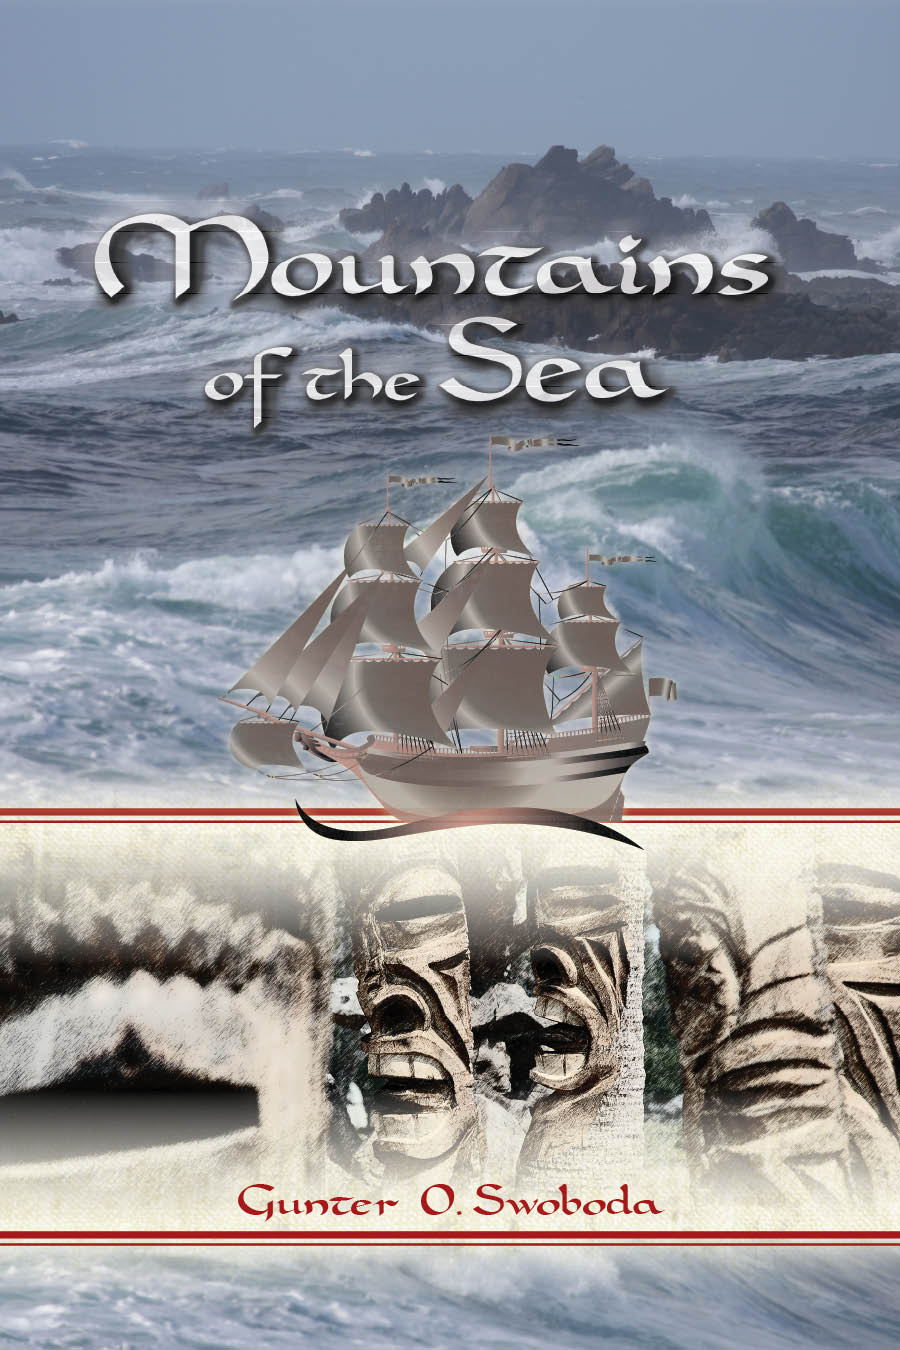 Mountains of the Sea